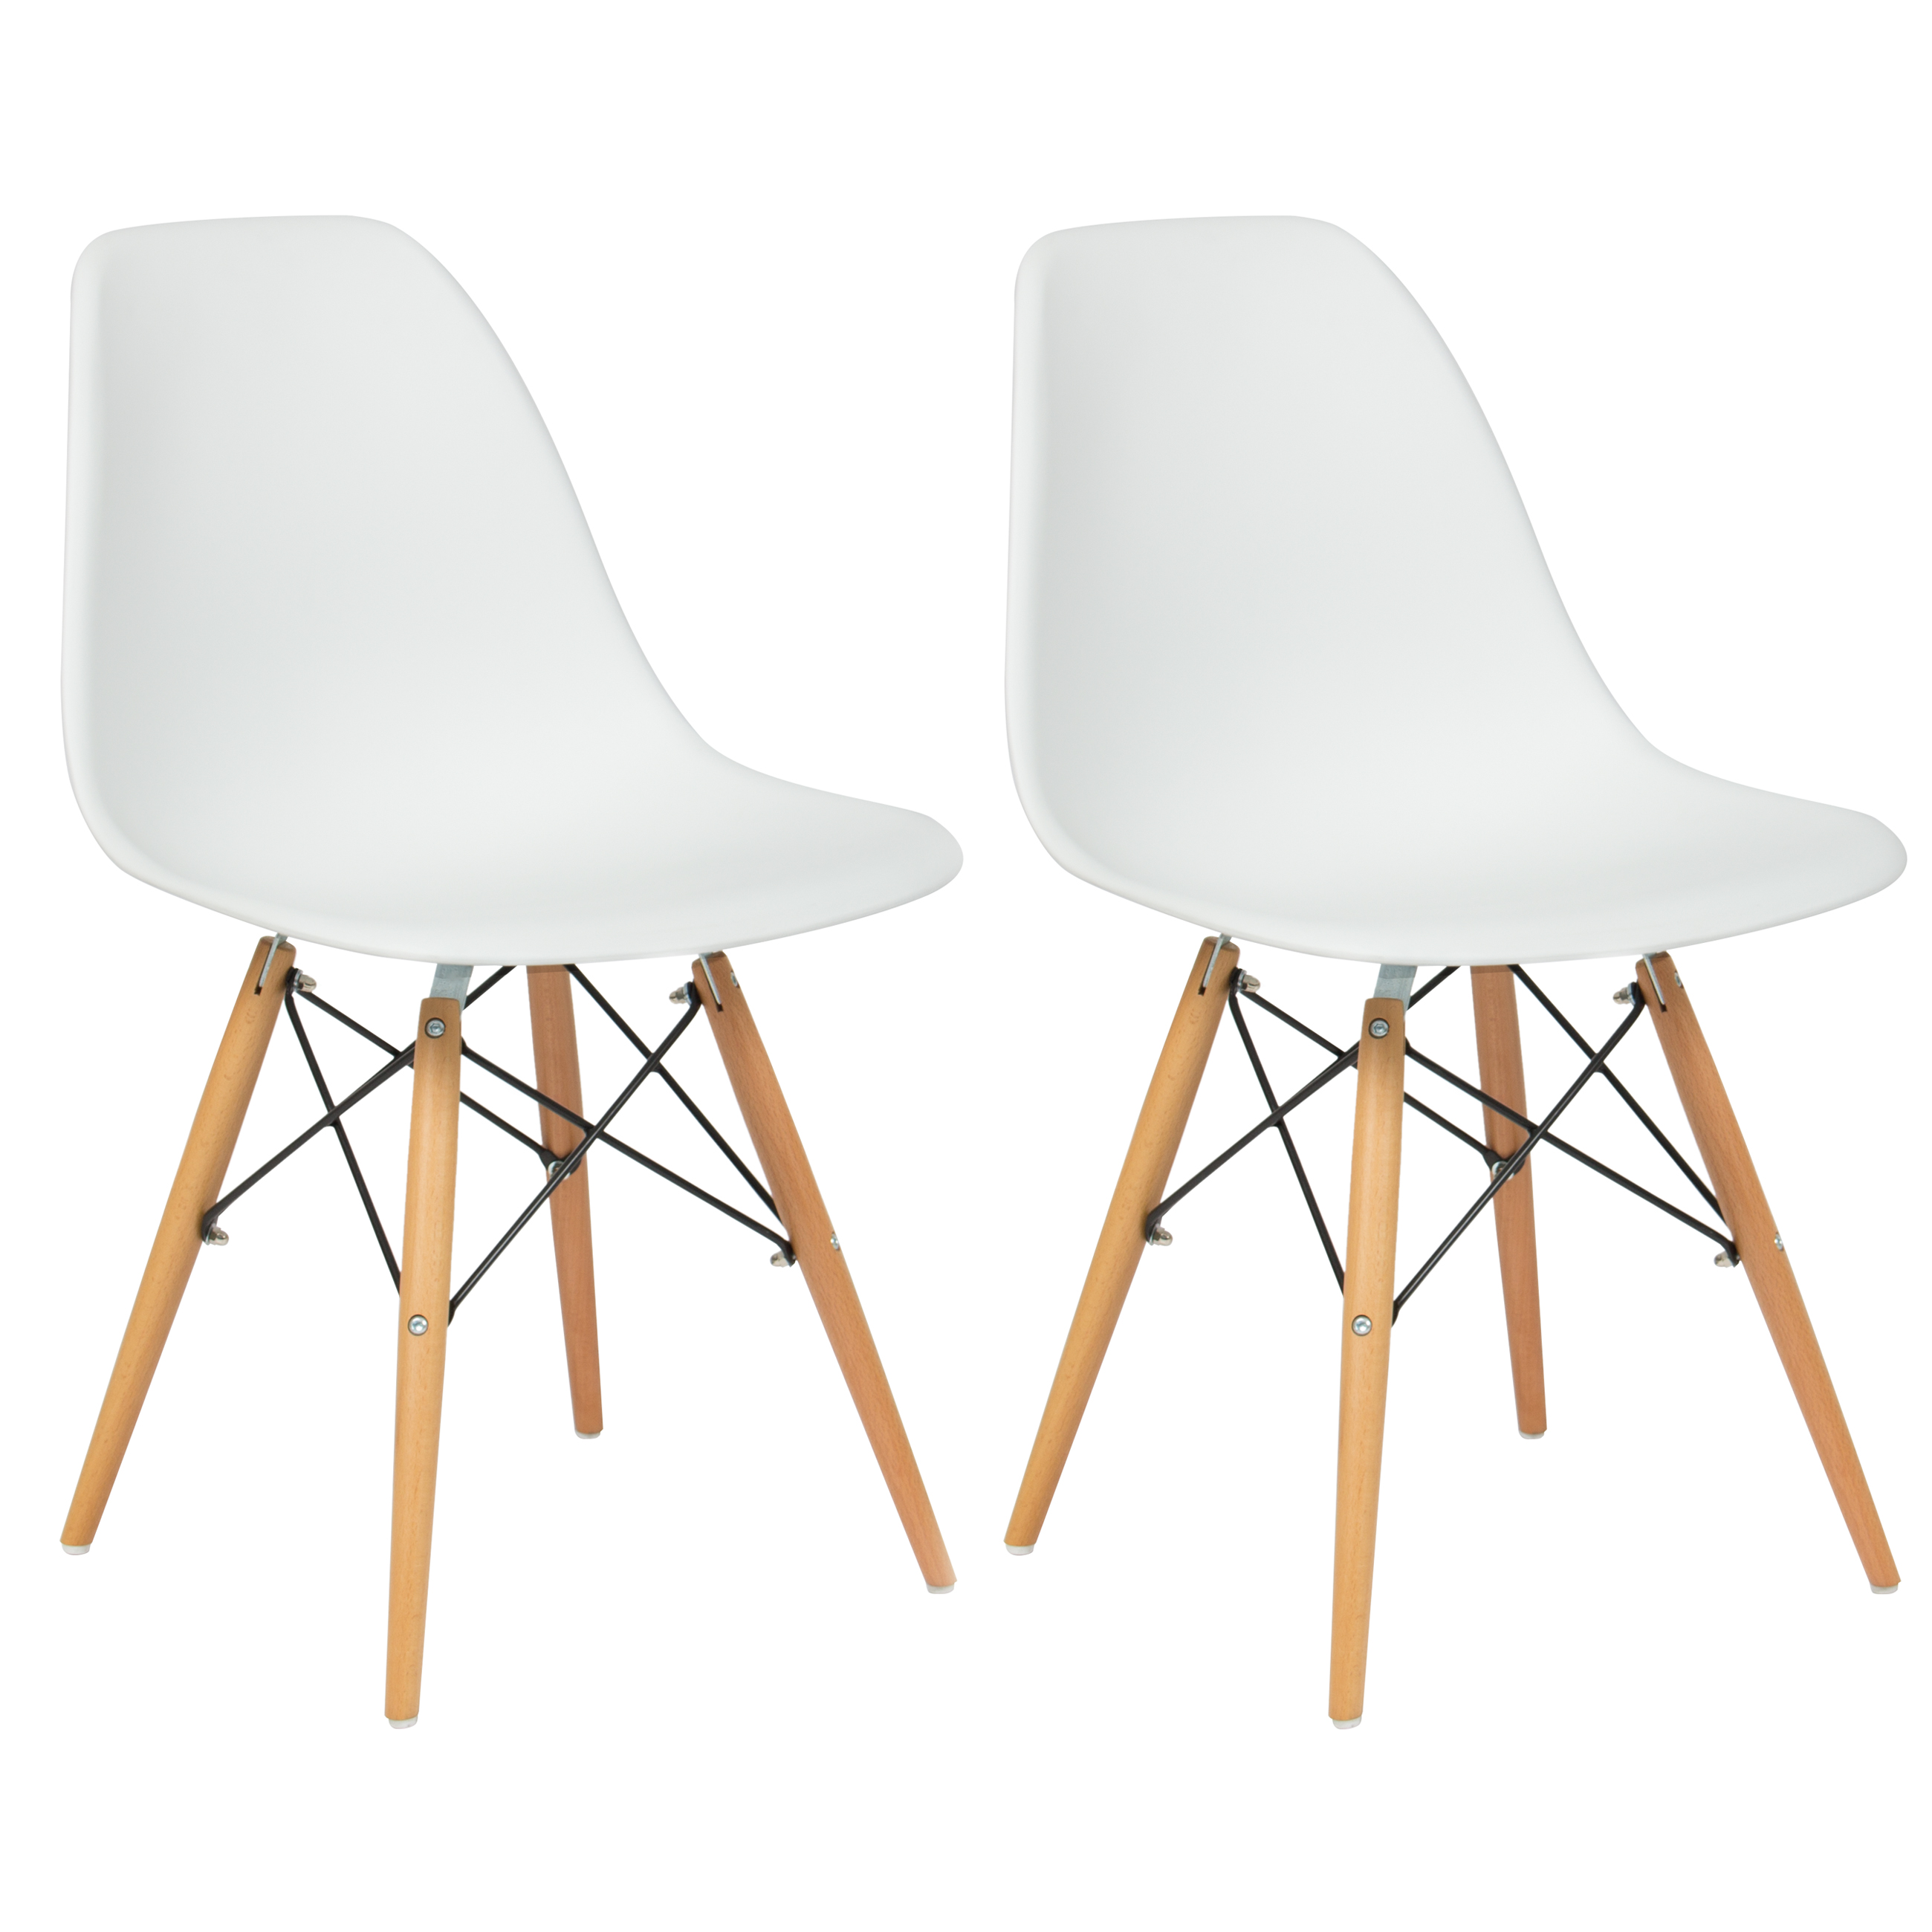 Molded Plastic Dining Chairs set of (2) eames style dining chair mid century modern molded